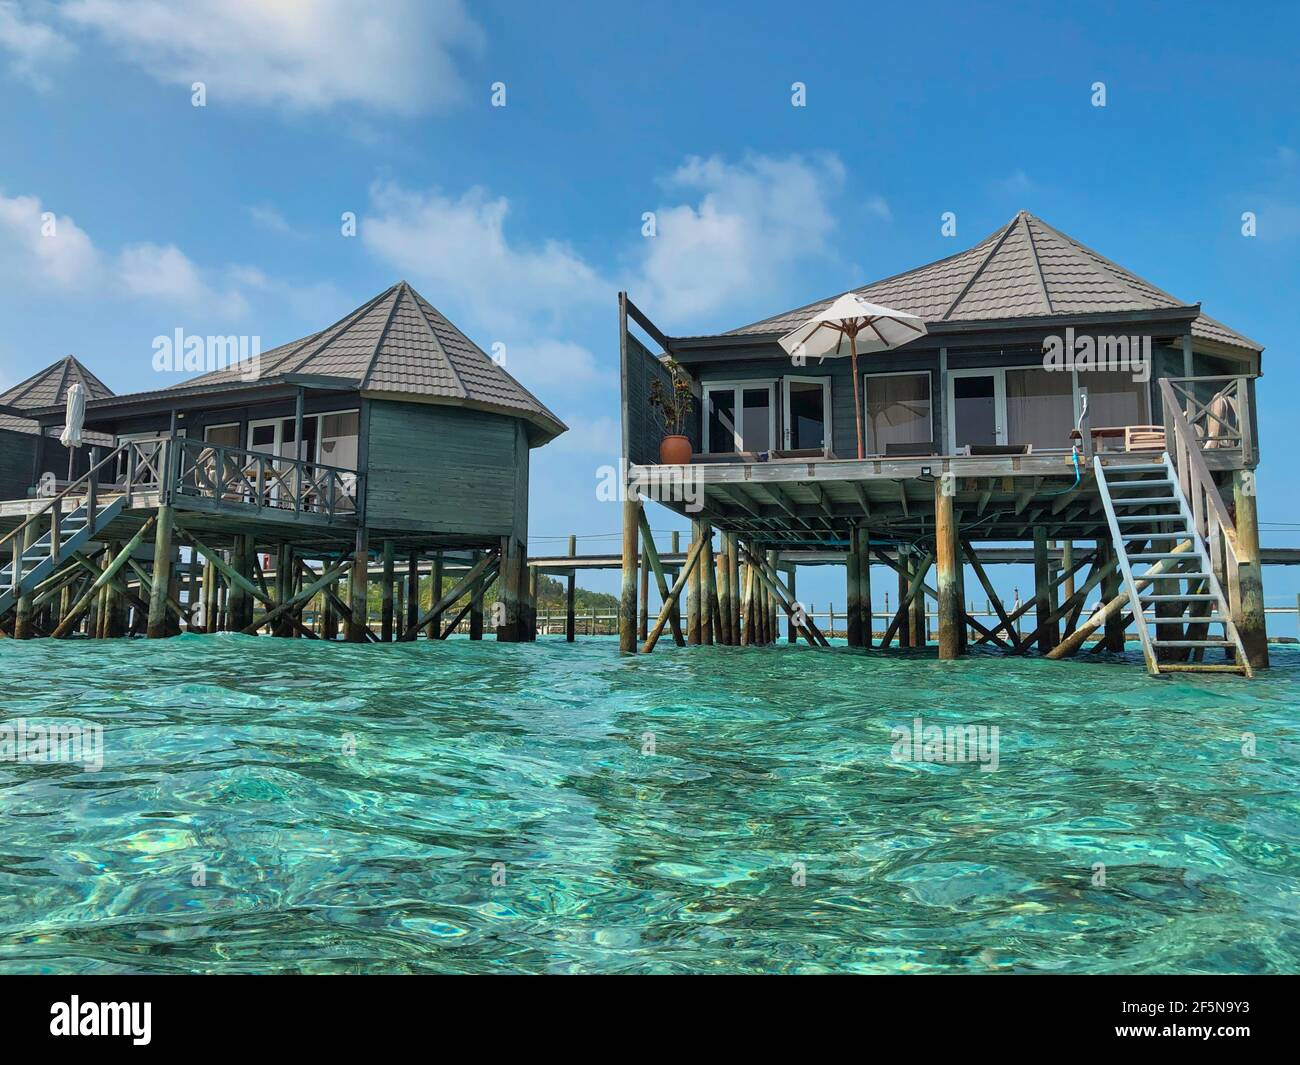 Wooden Water Villa with Turquoise Ocean in Maldives. Beautiful View of Overwater Bungalows with Laccadive Sea in Maldivian Resort Komandoo. Stock Photo